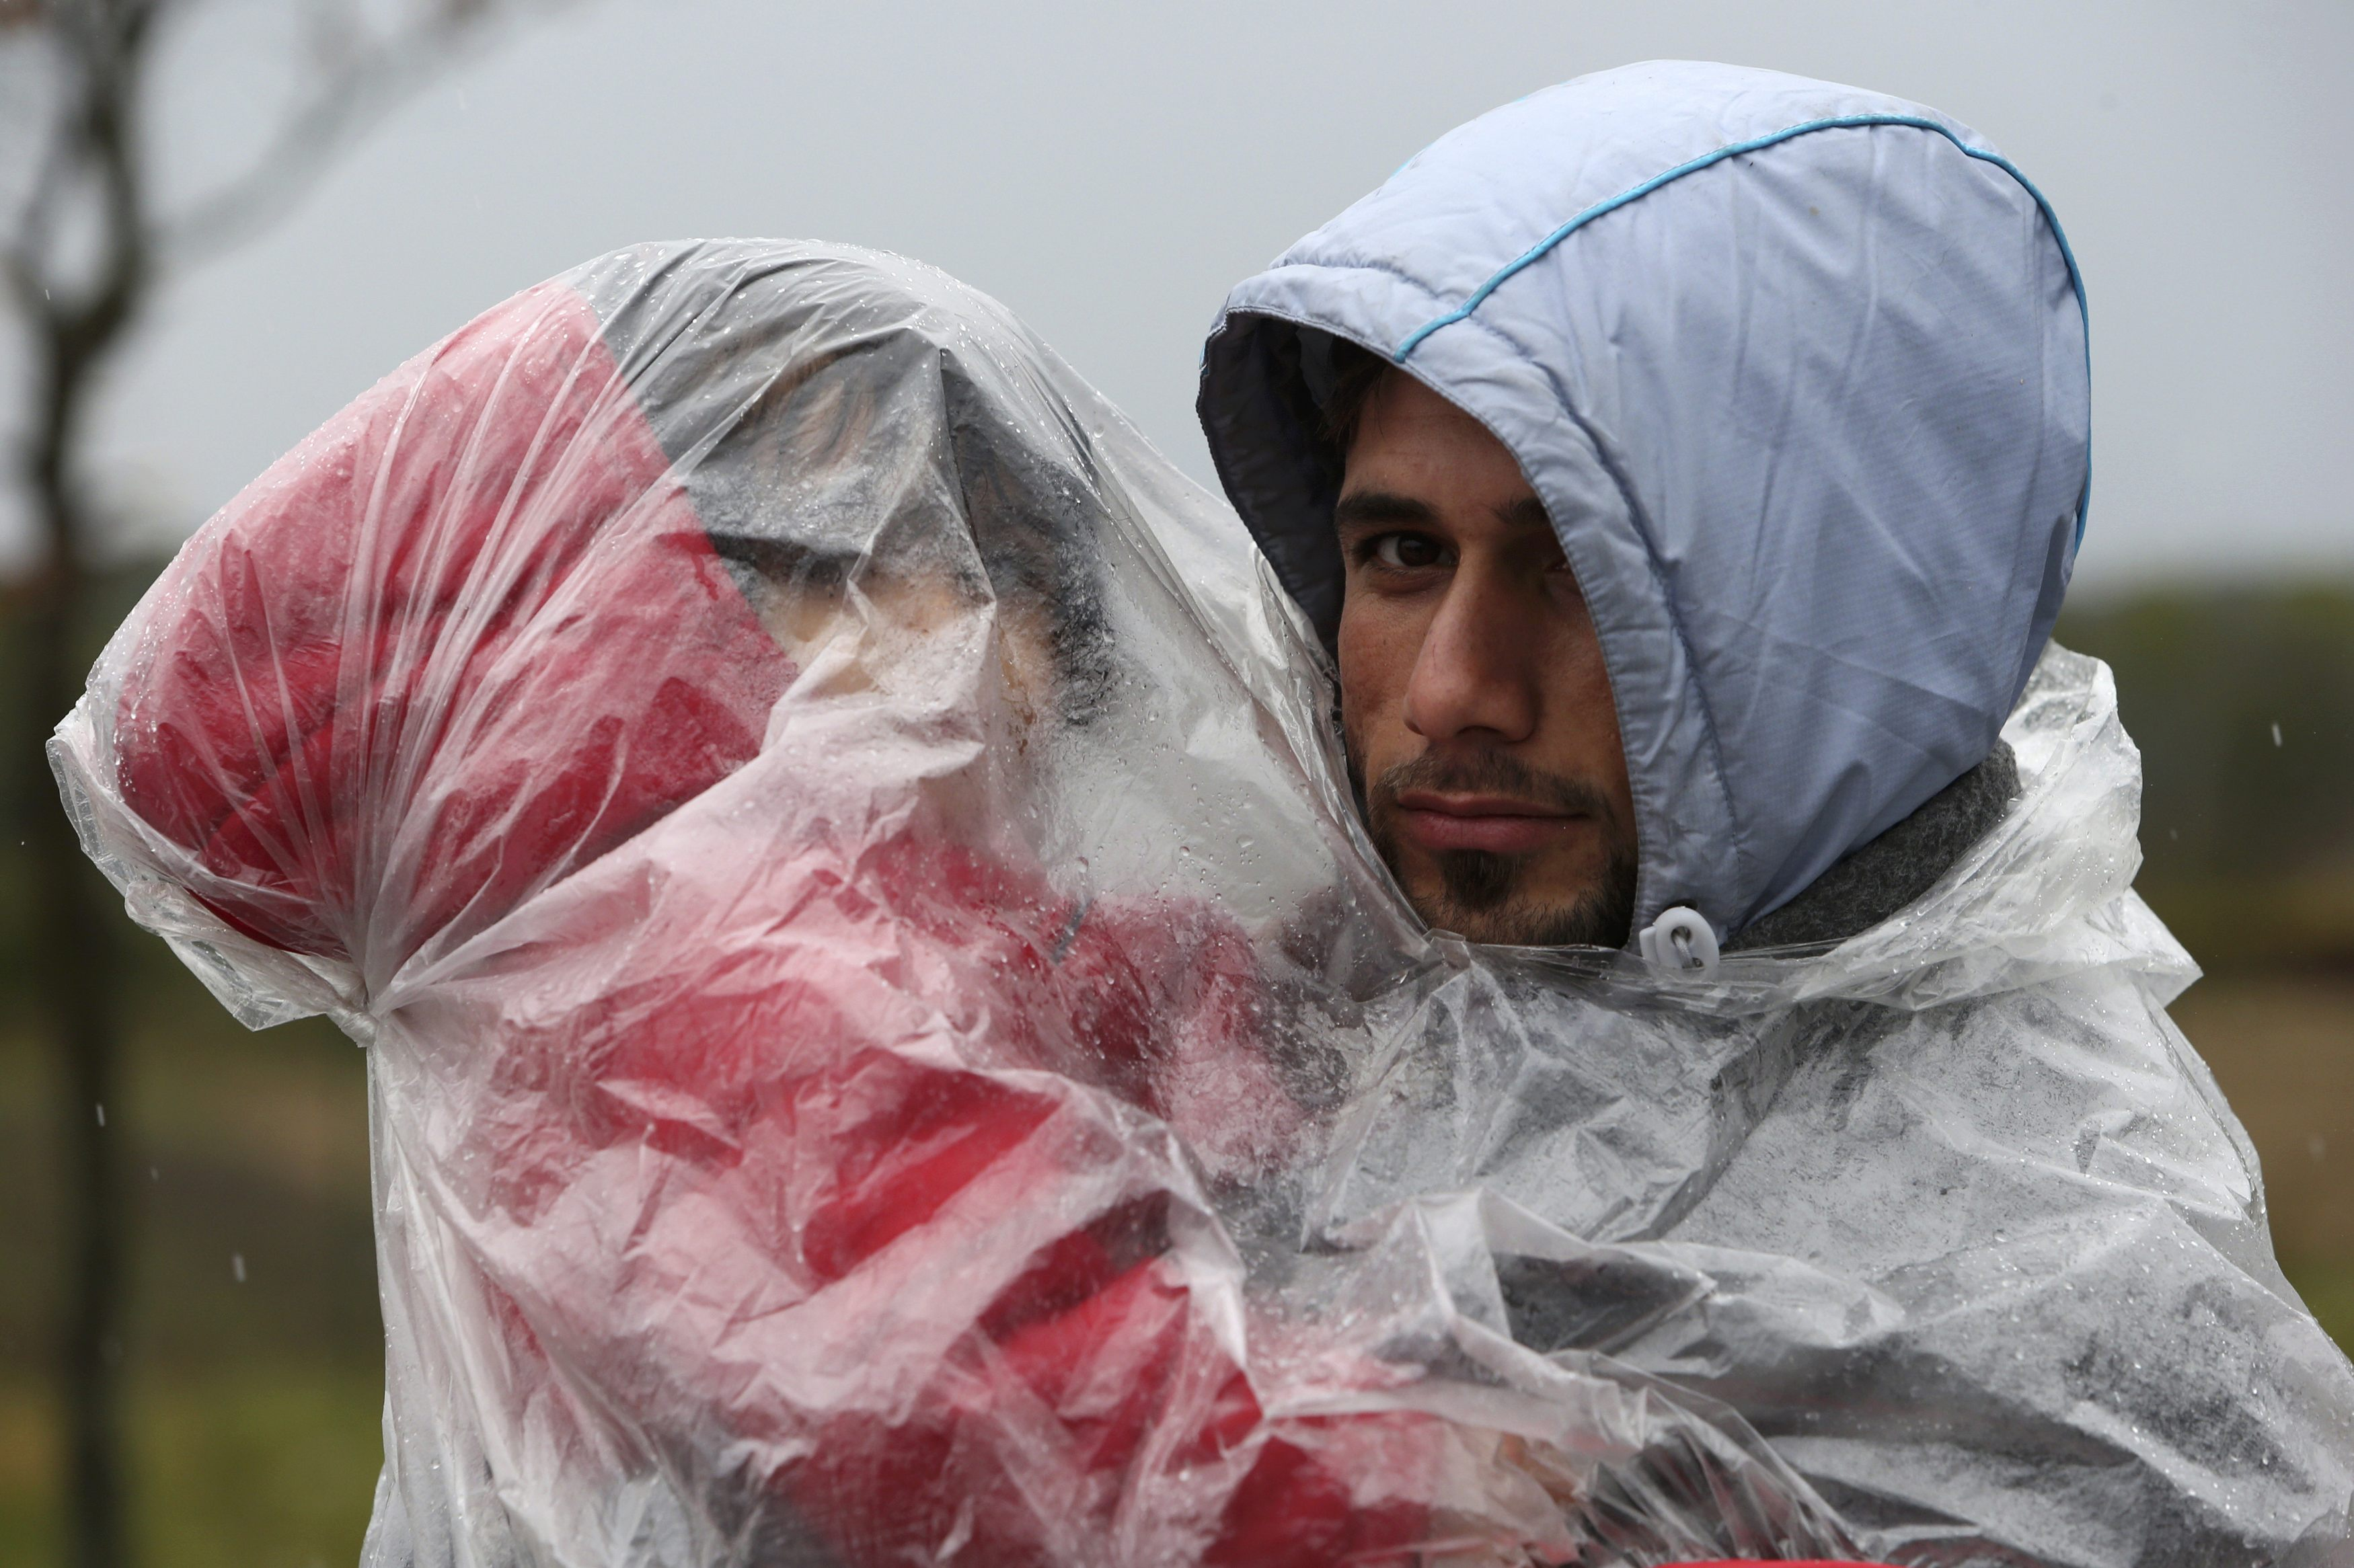 A migrant holds a child as they walk to enter Slovenia from Trnovec